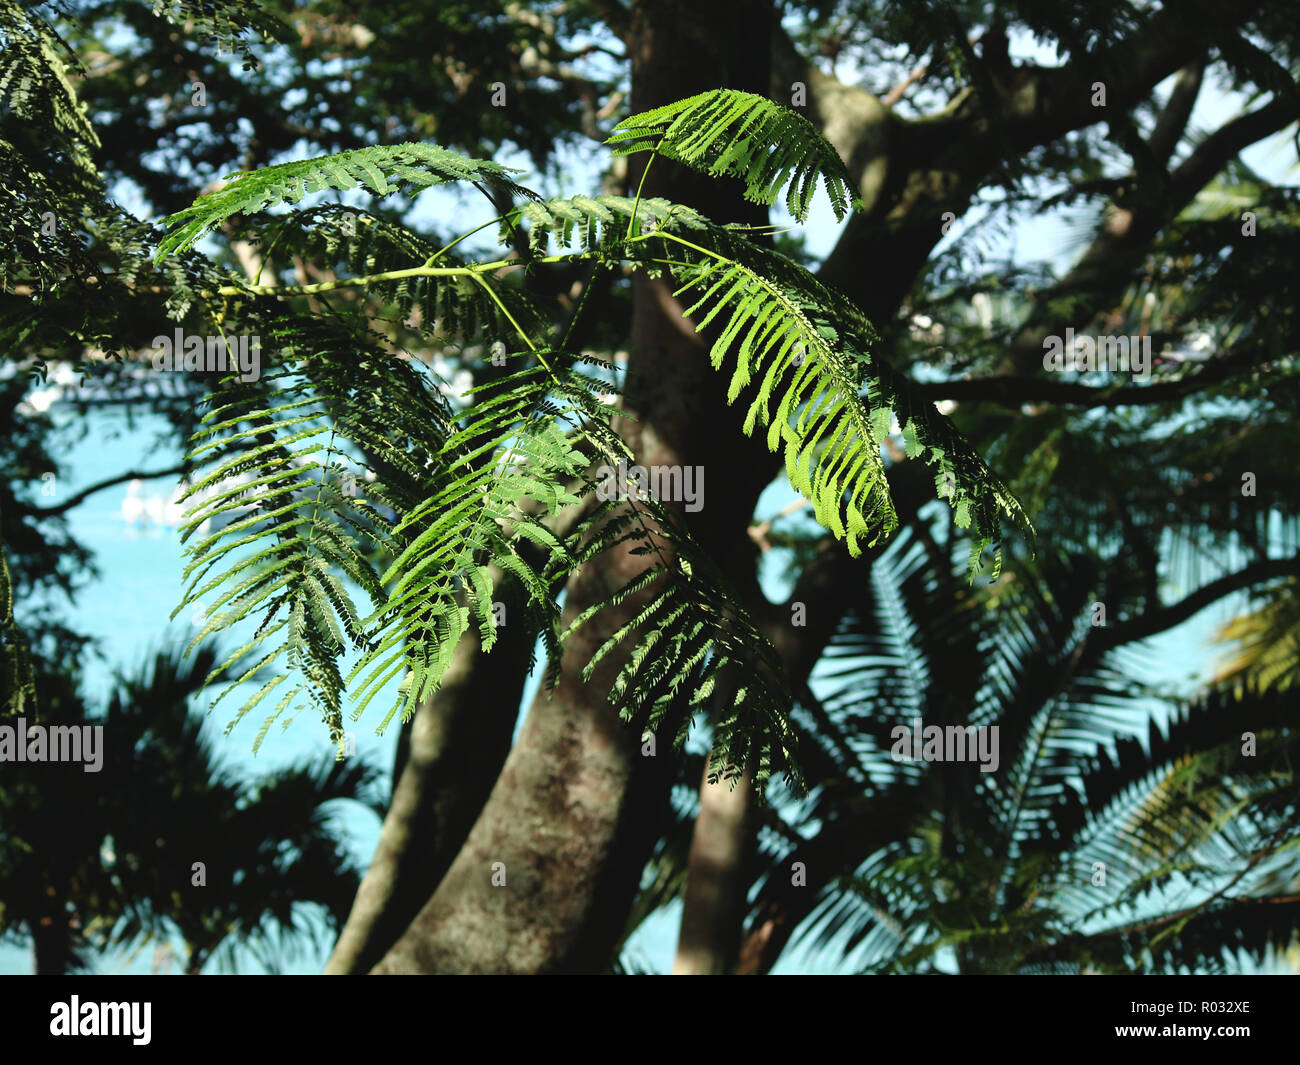 Palm Trees Growing Outdoors - Stock Image